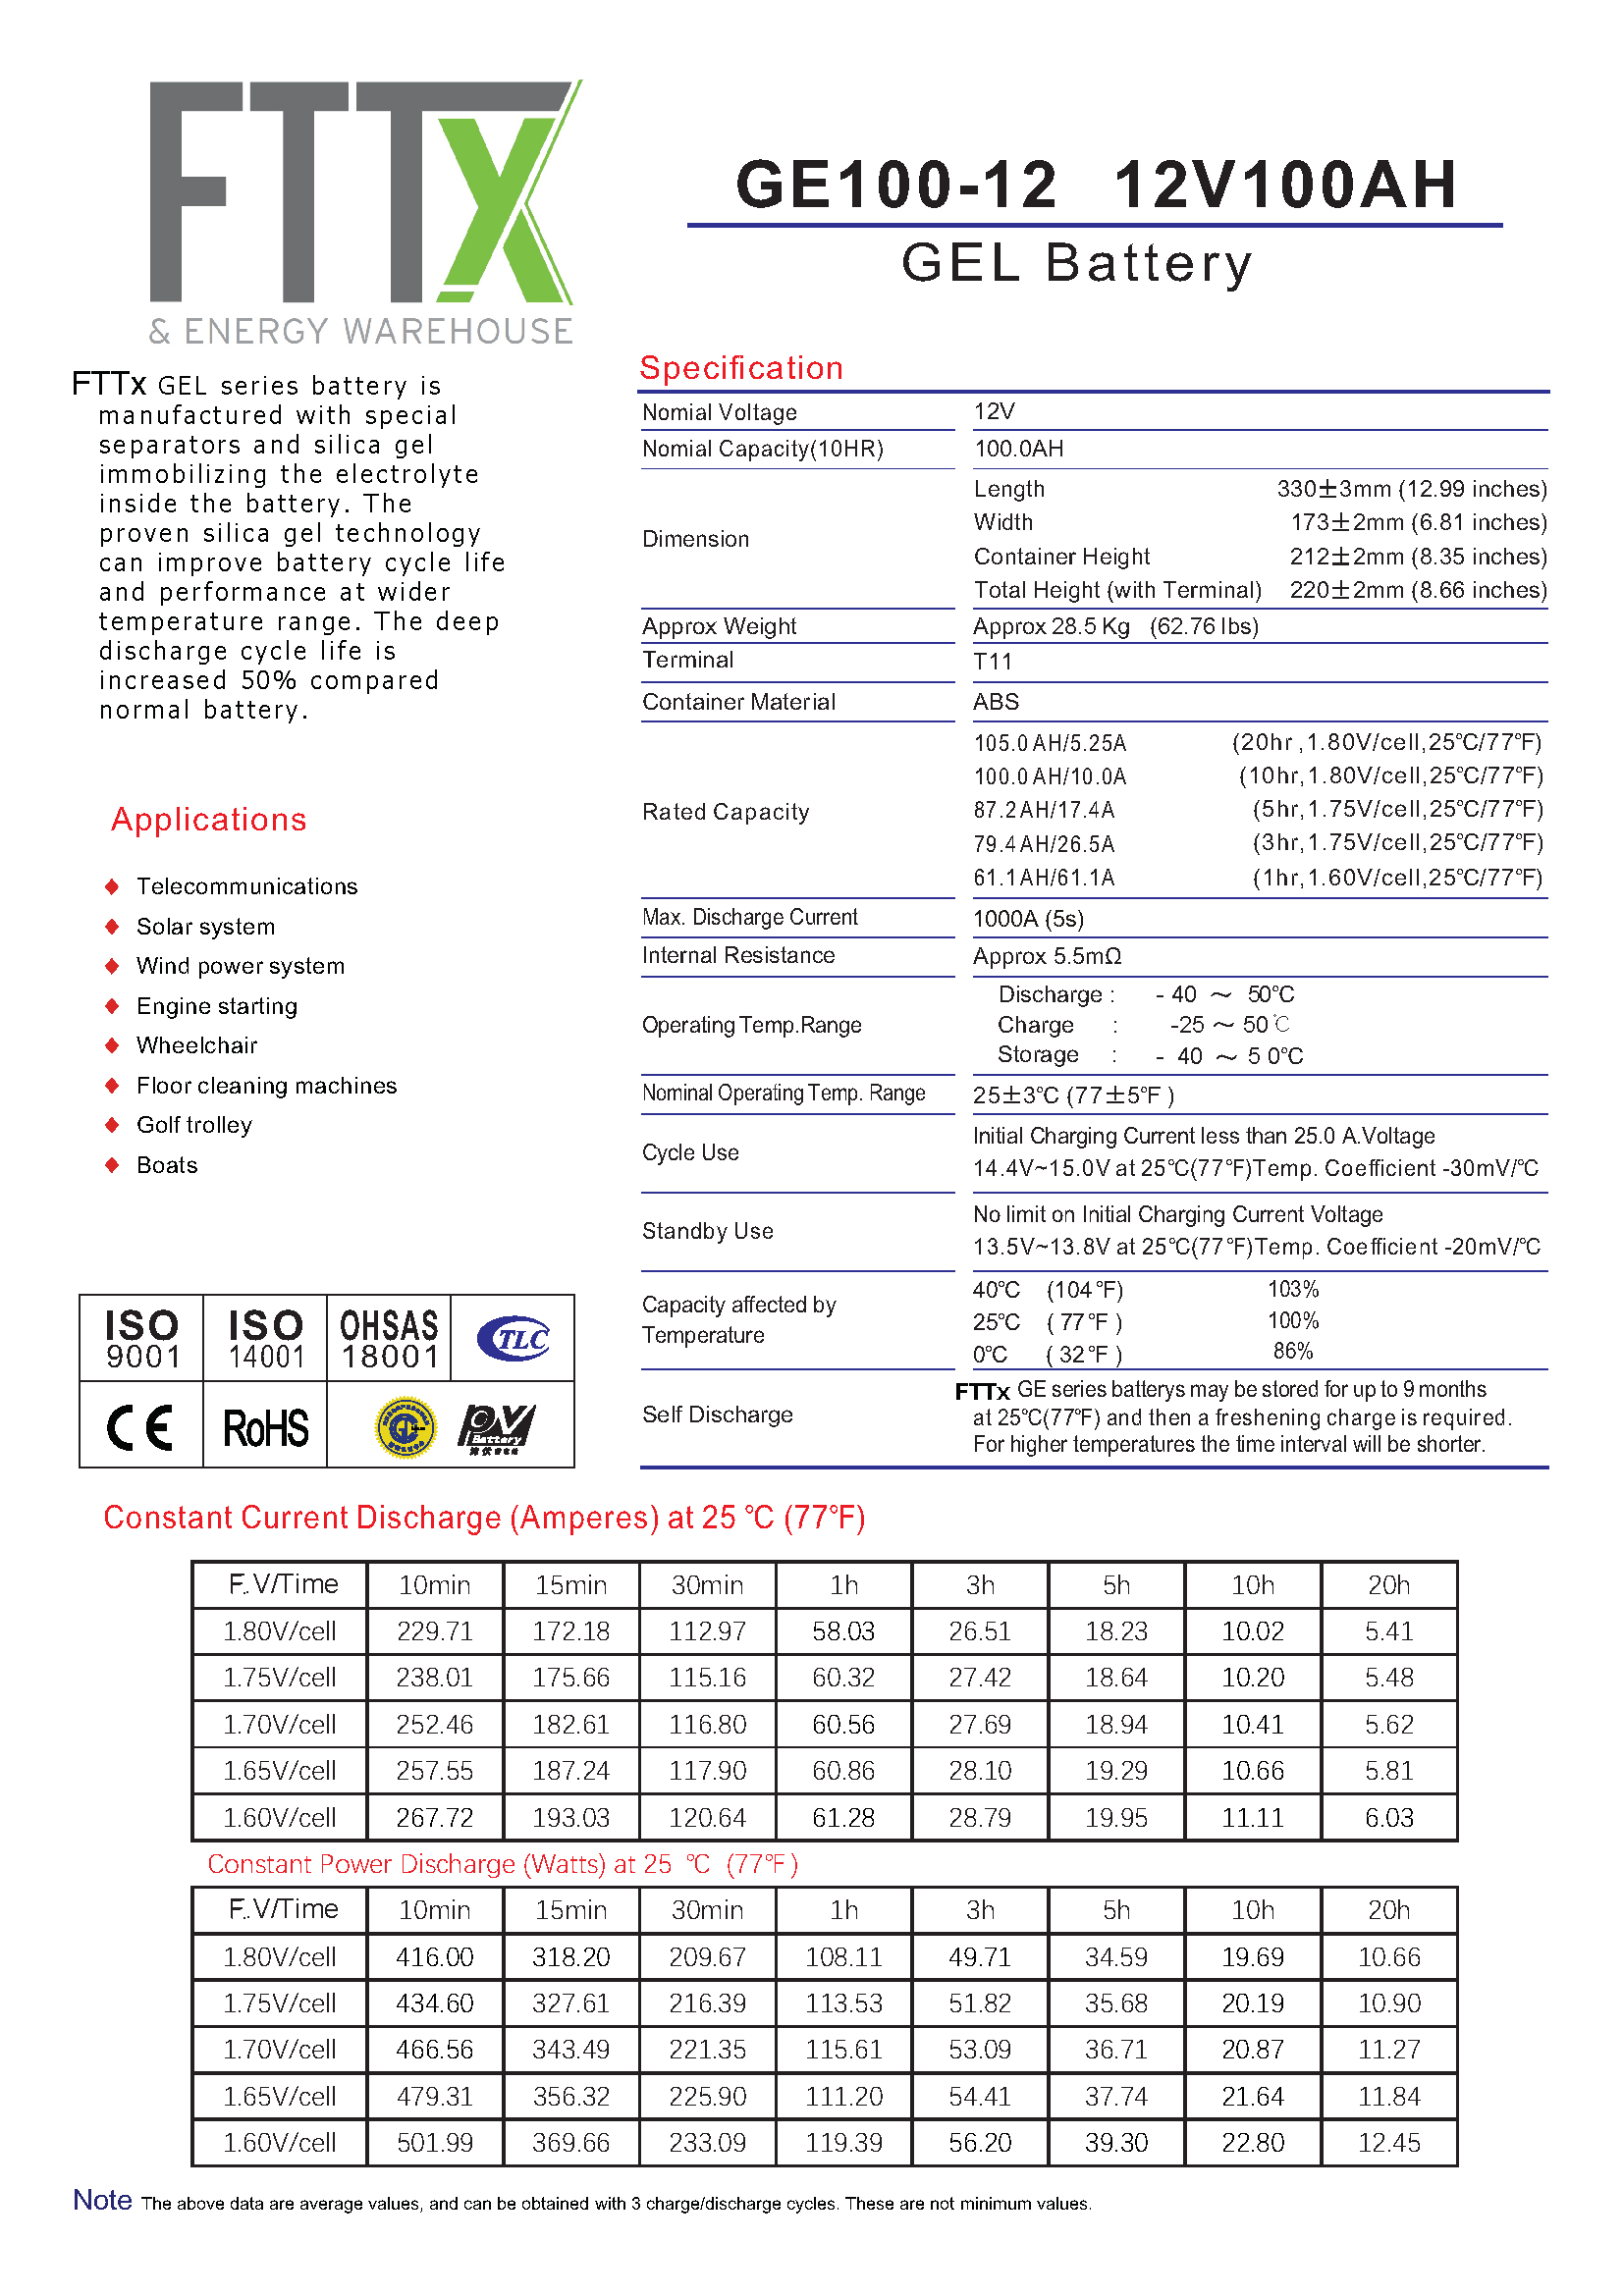 FTTx GE100 12v 2 Page 1